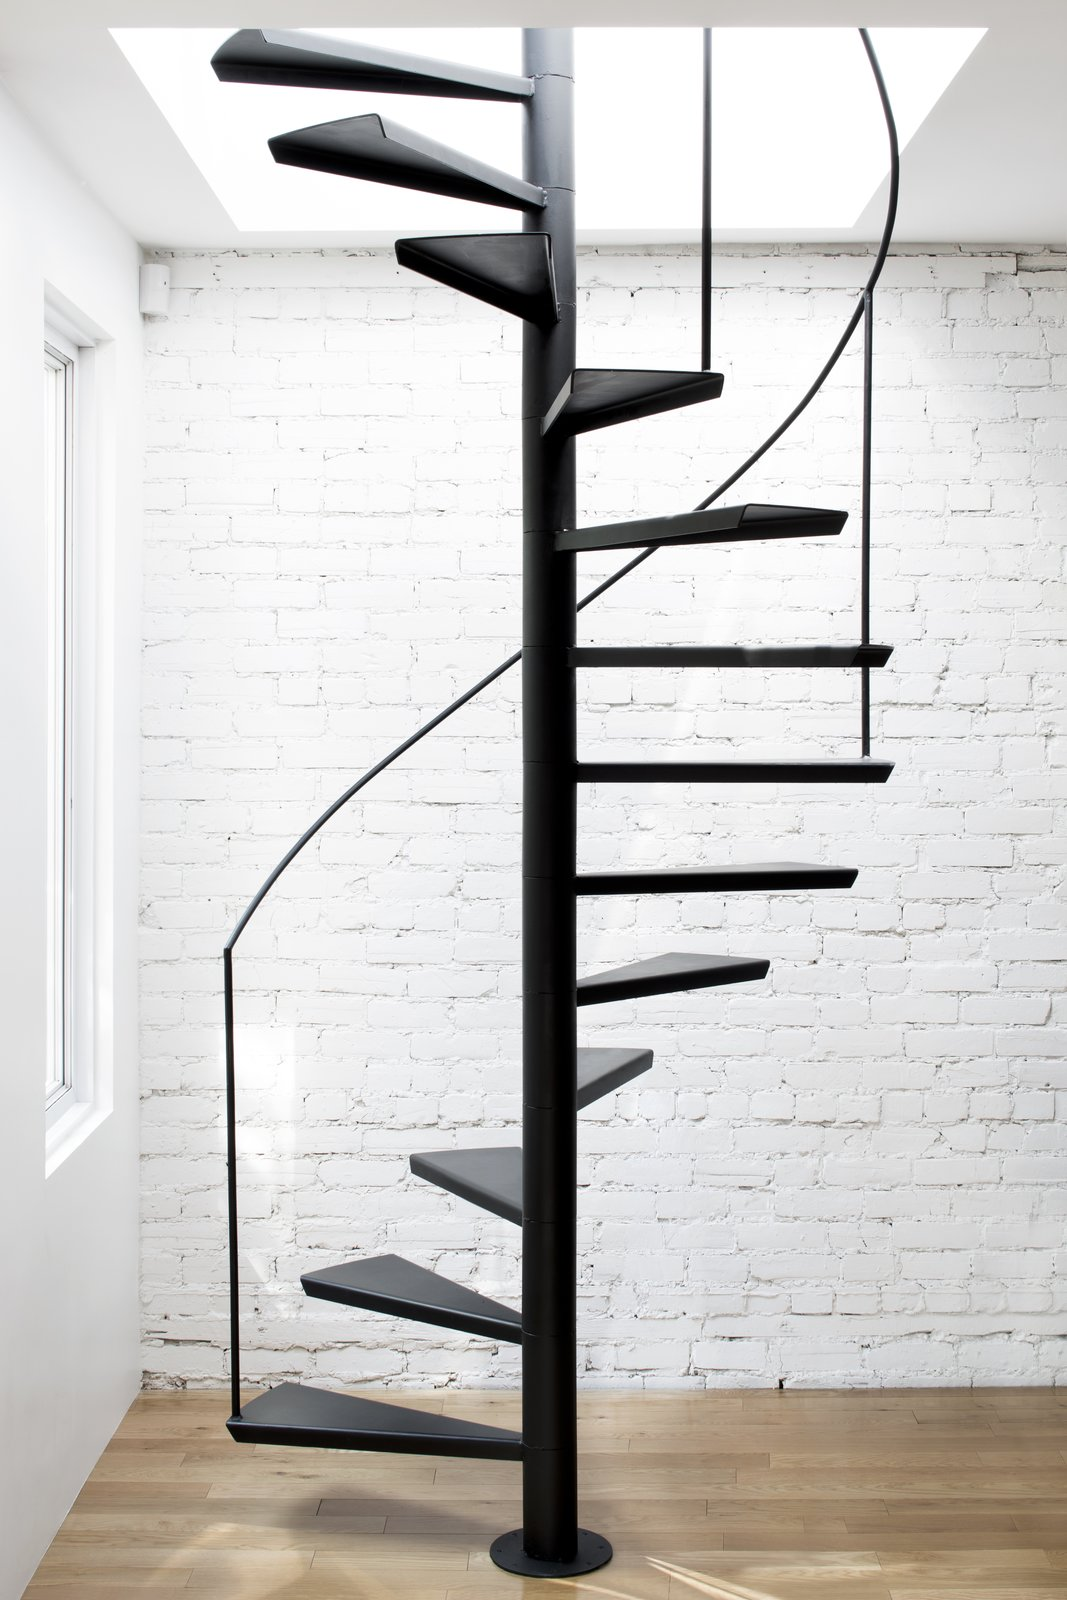 An interior, custom-made steel staircase with floating treads and a minimal handrail, lead to the roof deck above.